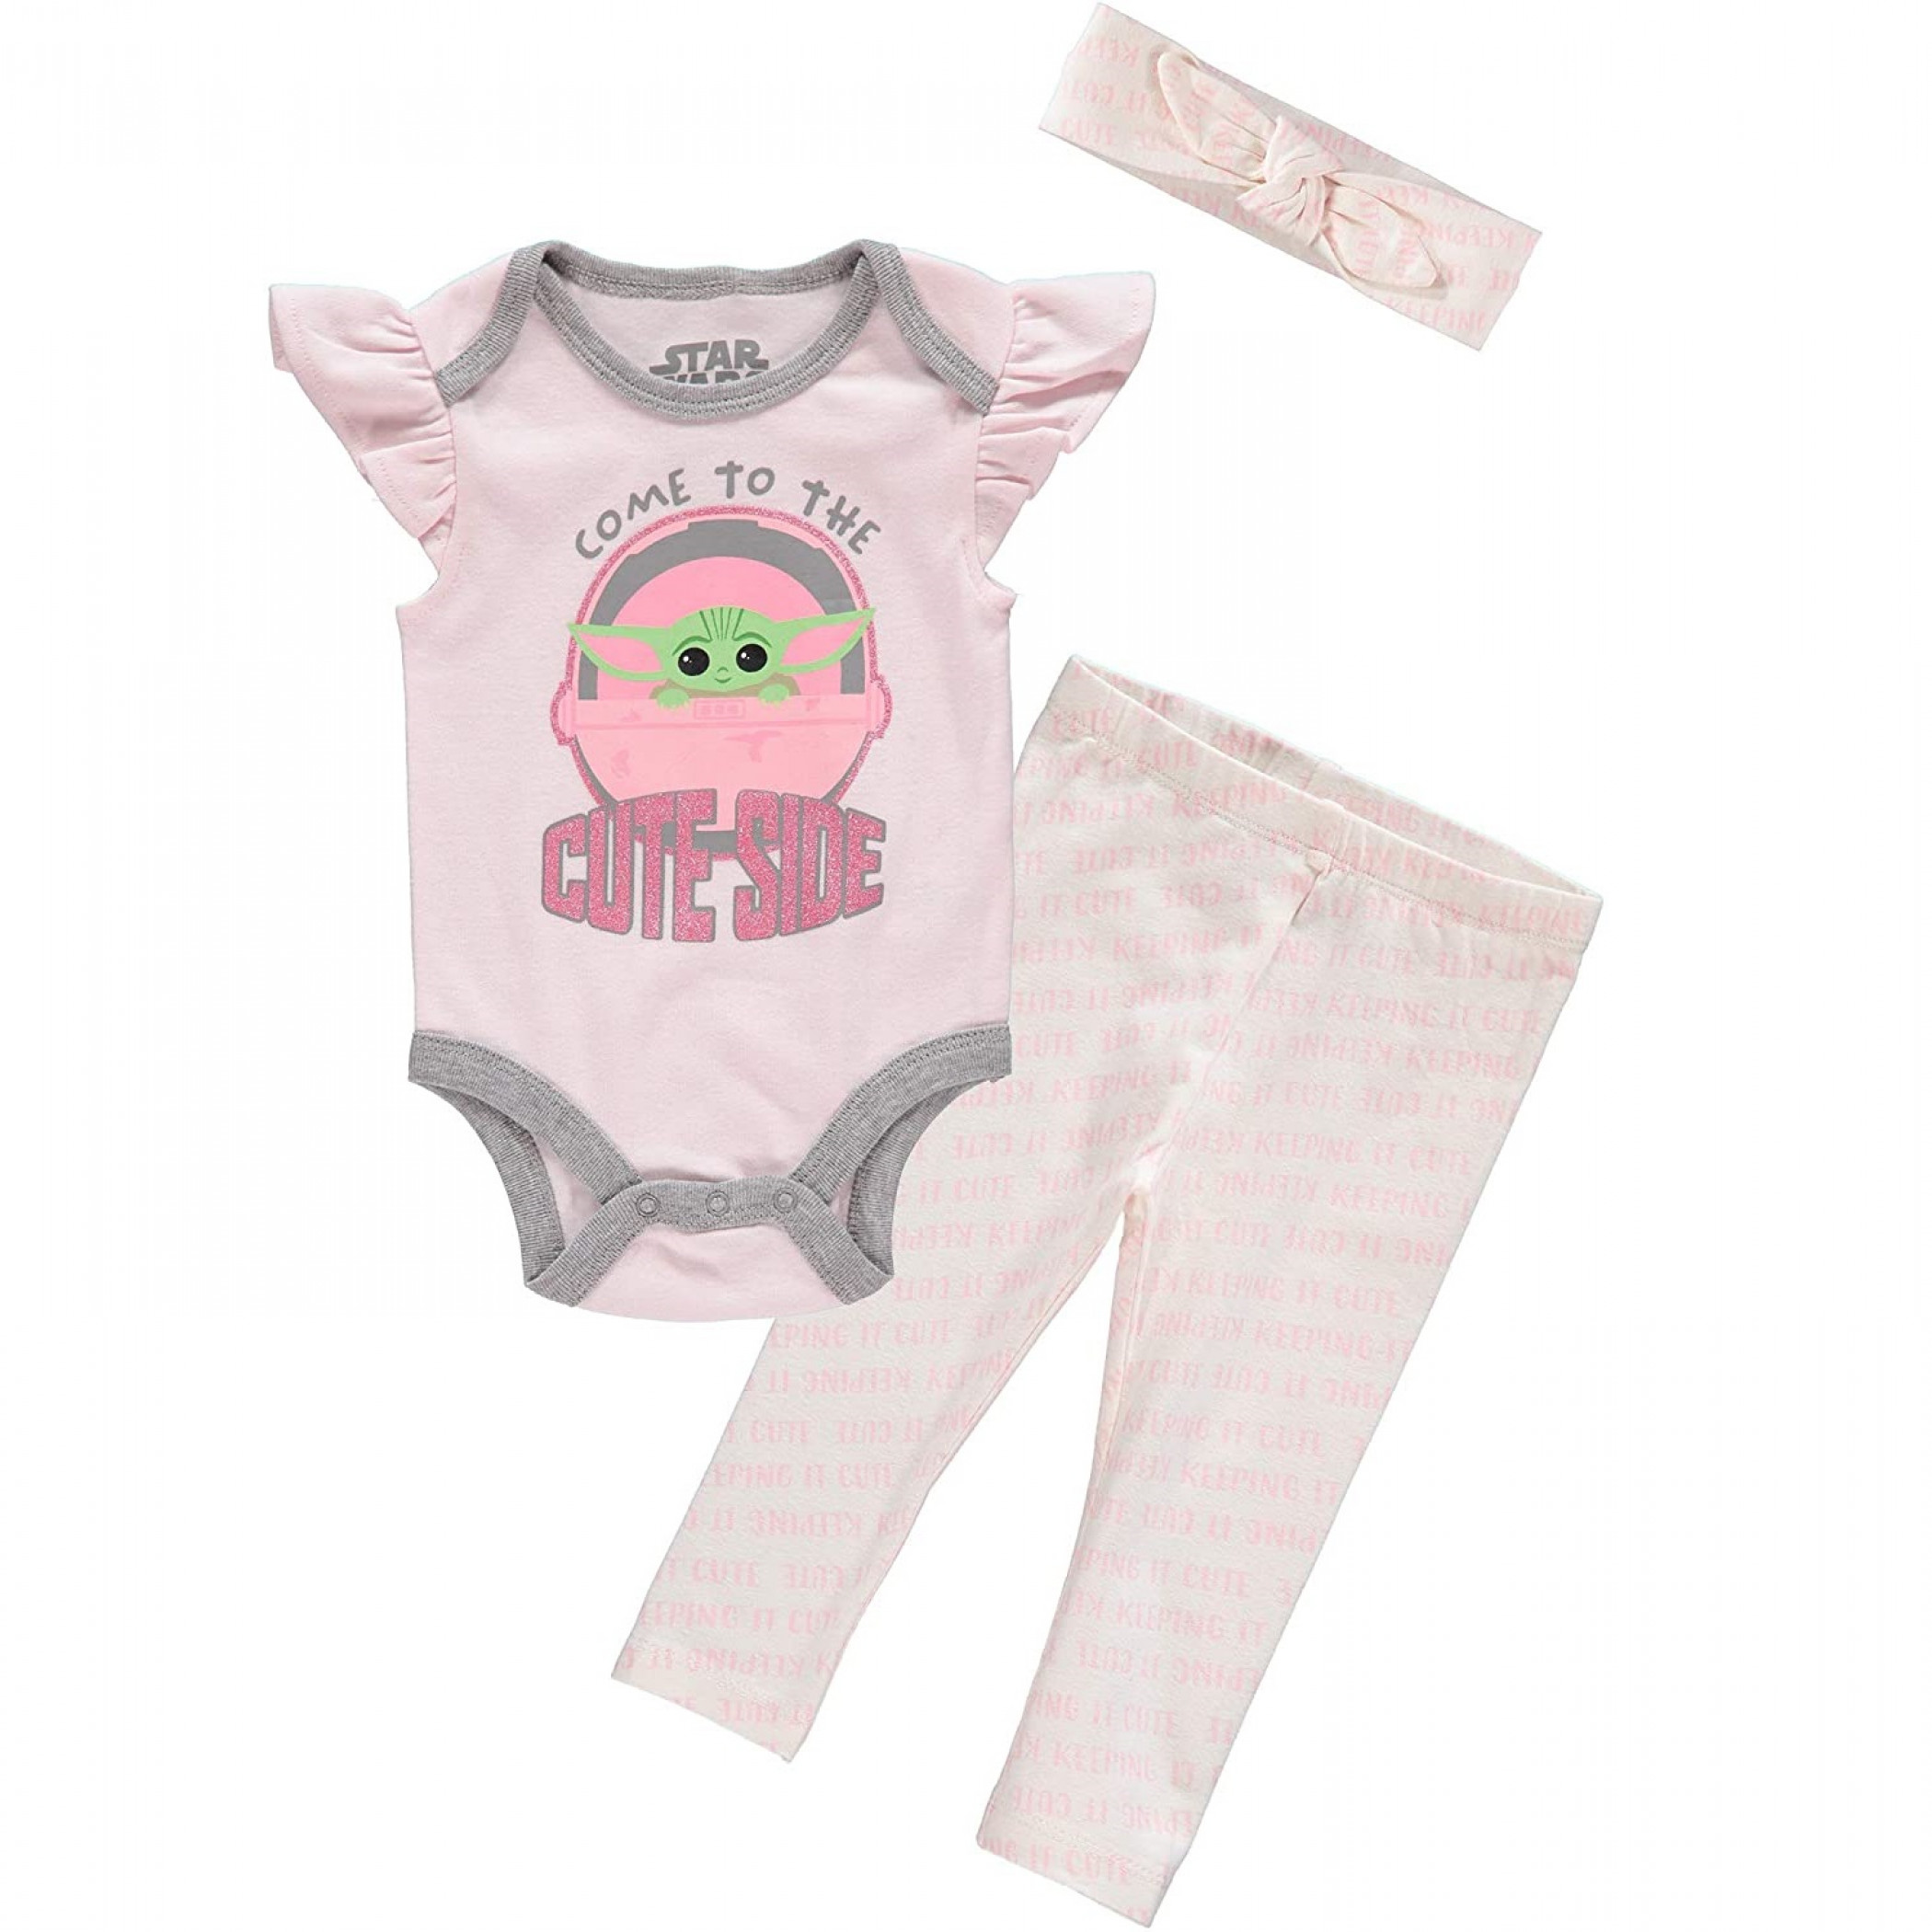 Star Wars The Mandalorian Child Girl 3-Piece Bodysuit Set With Headband